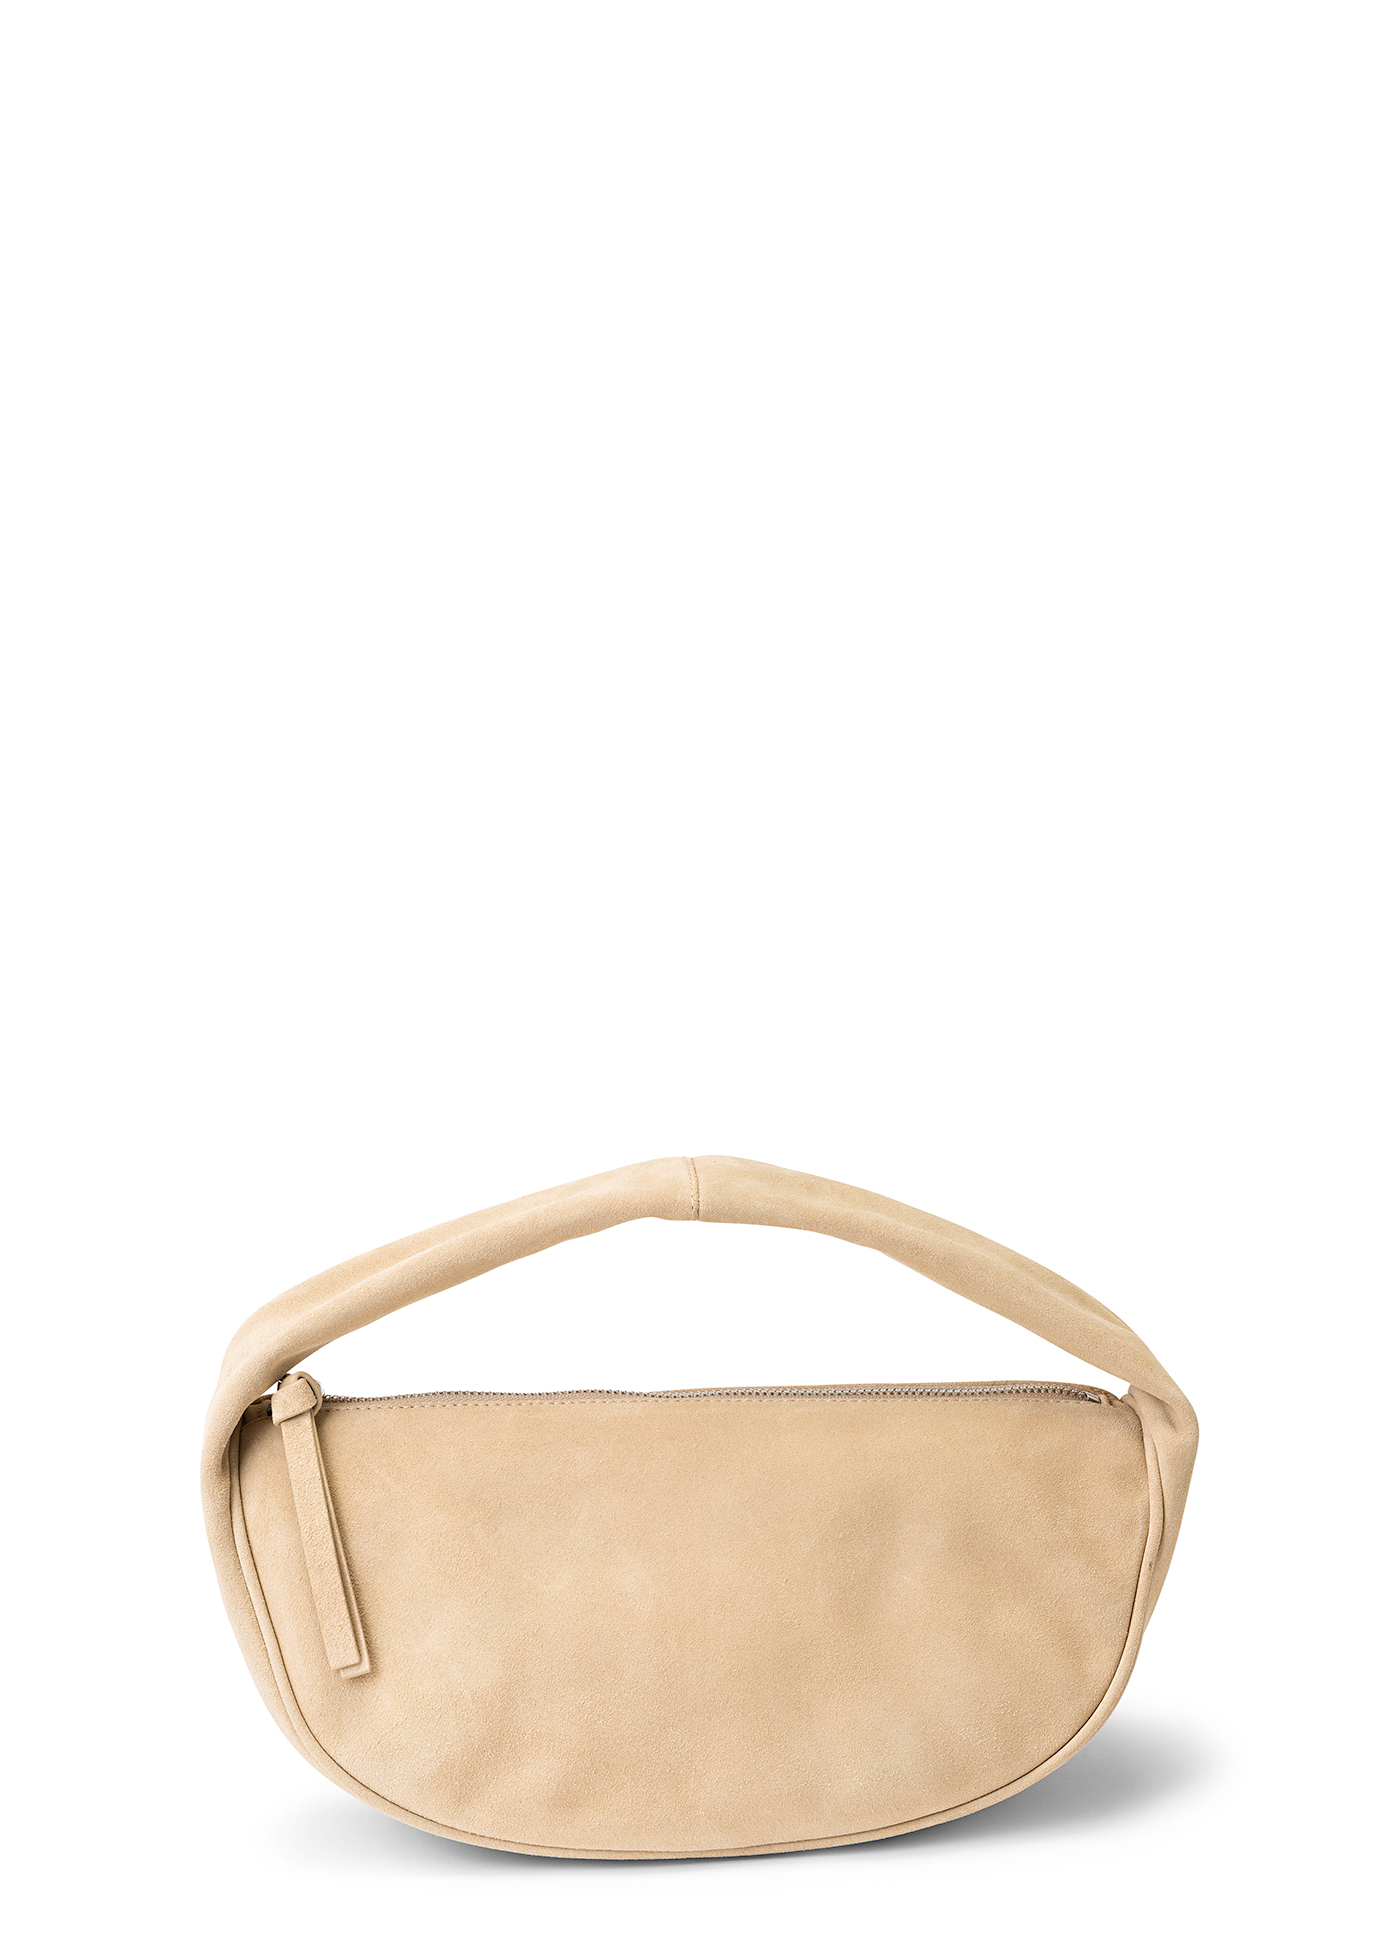 Cush Cappuccino Suede Leather image number 0